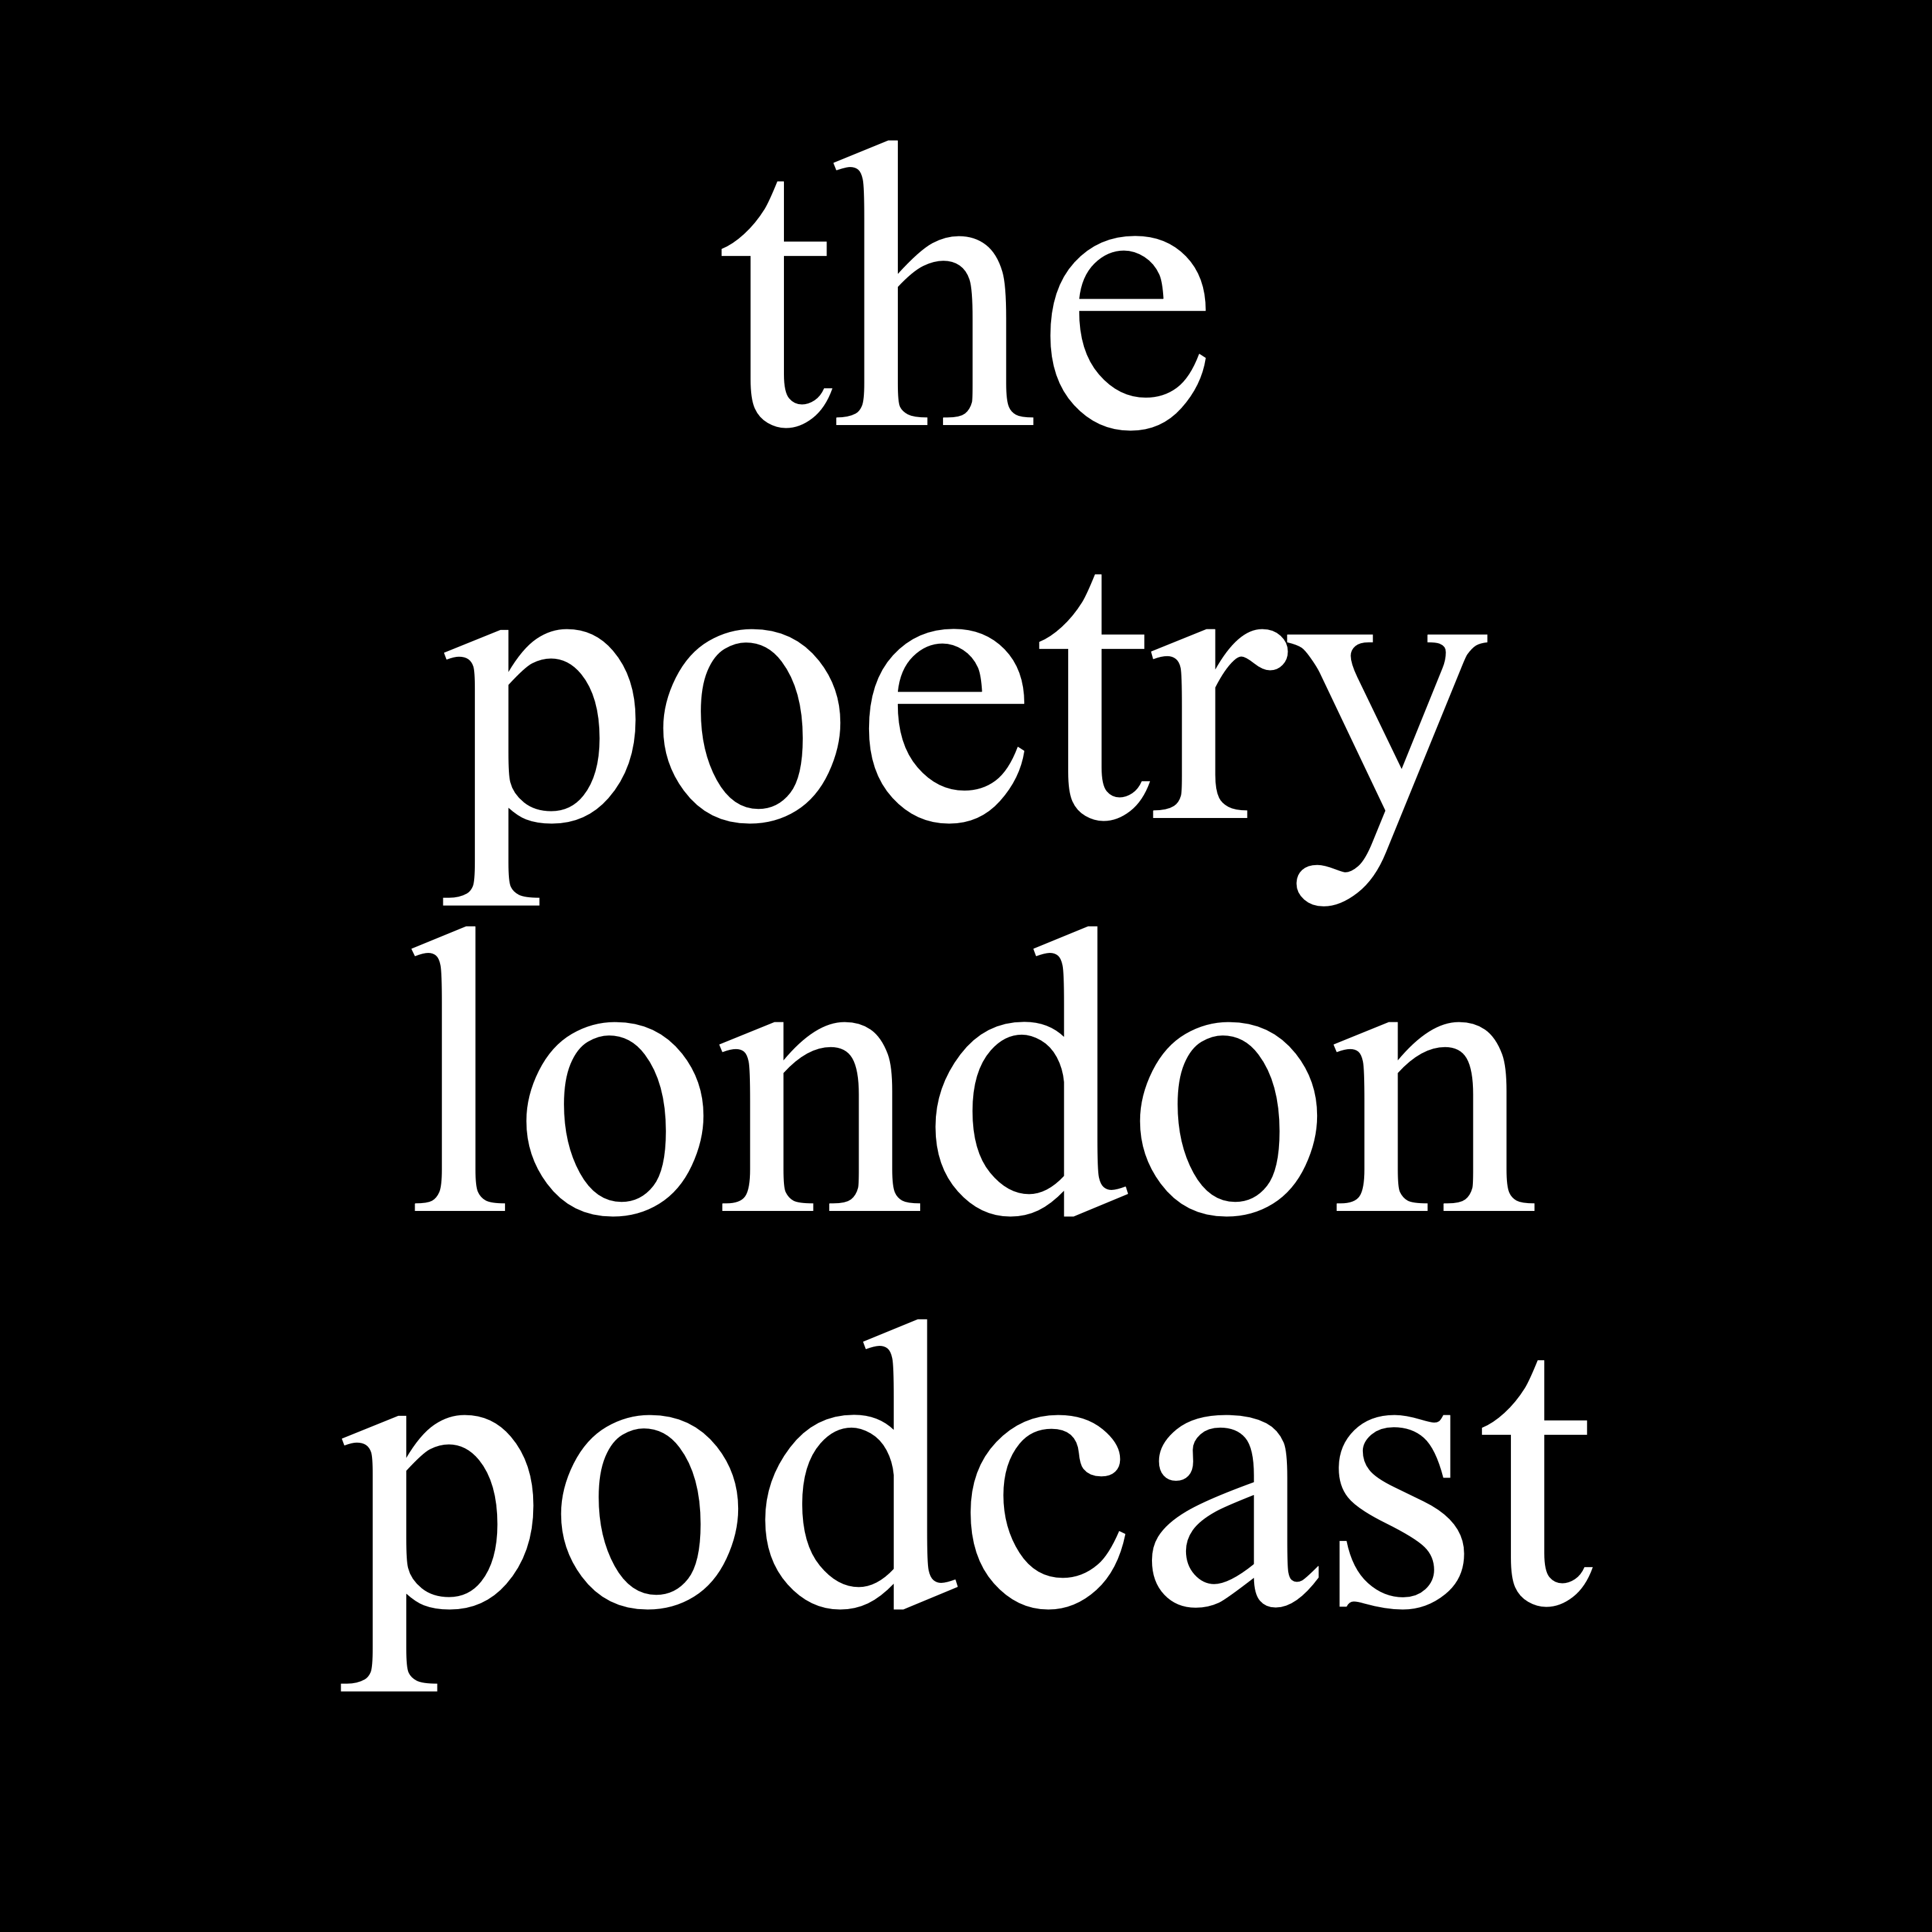 the poetry london podcast icon